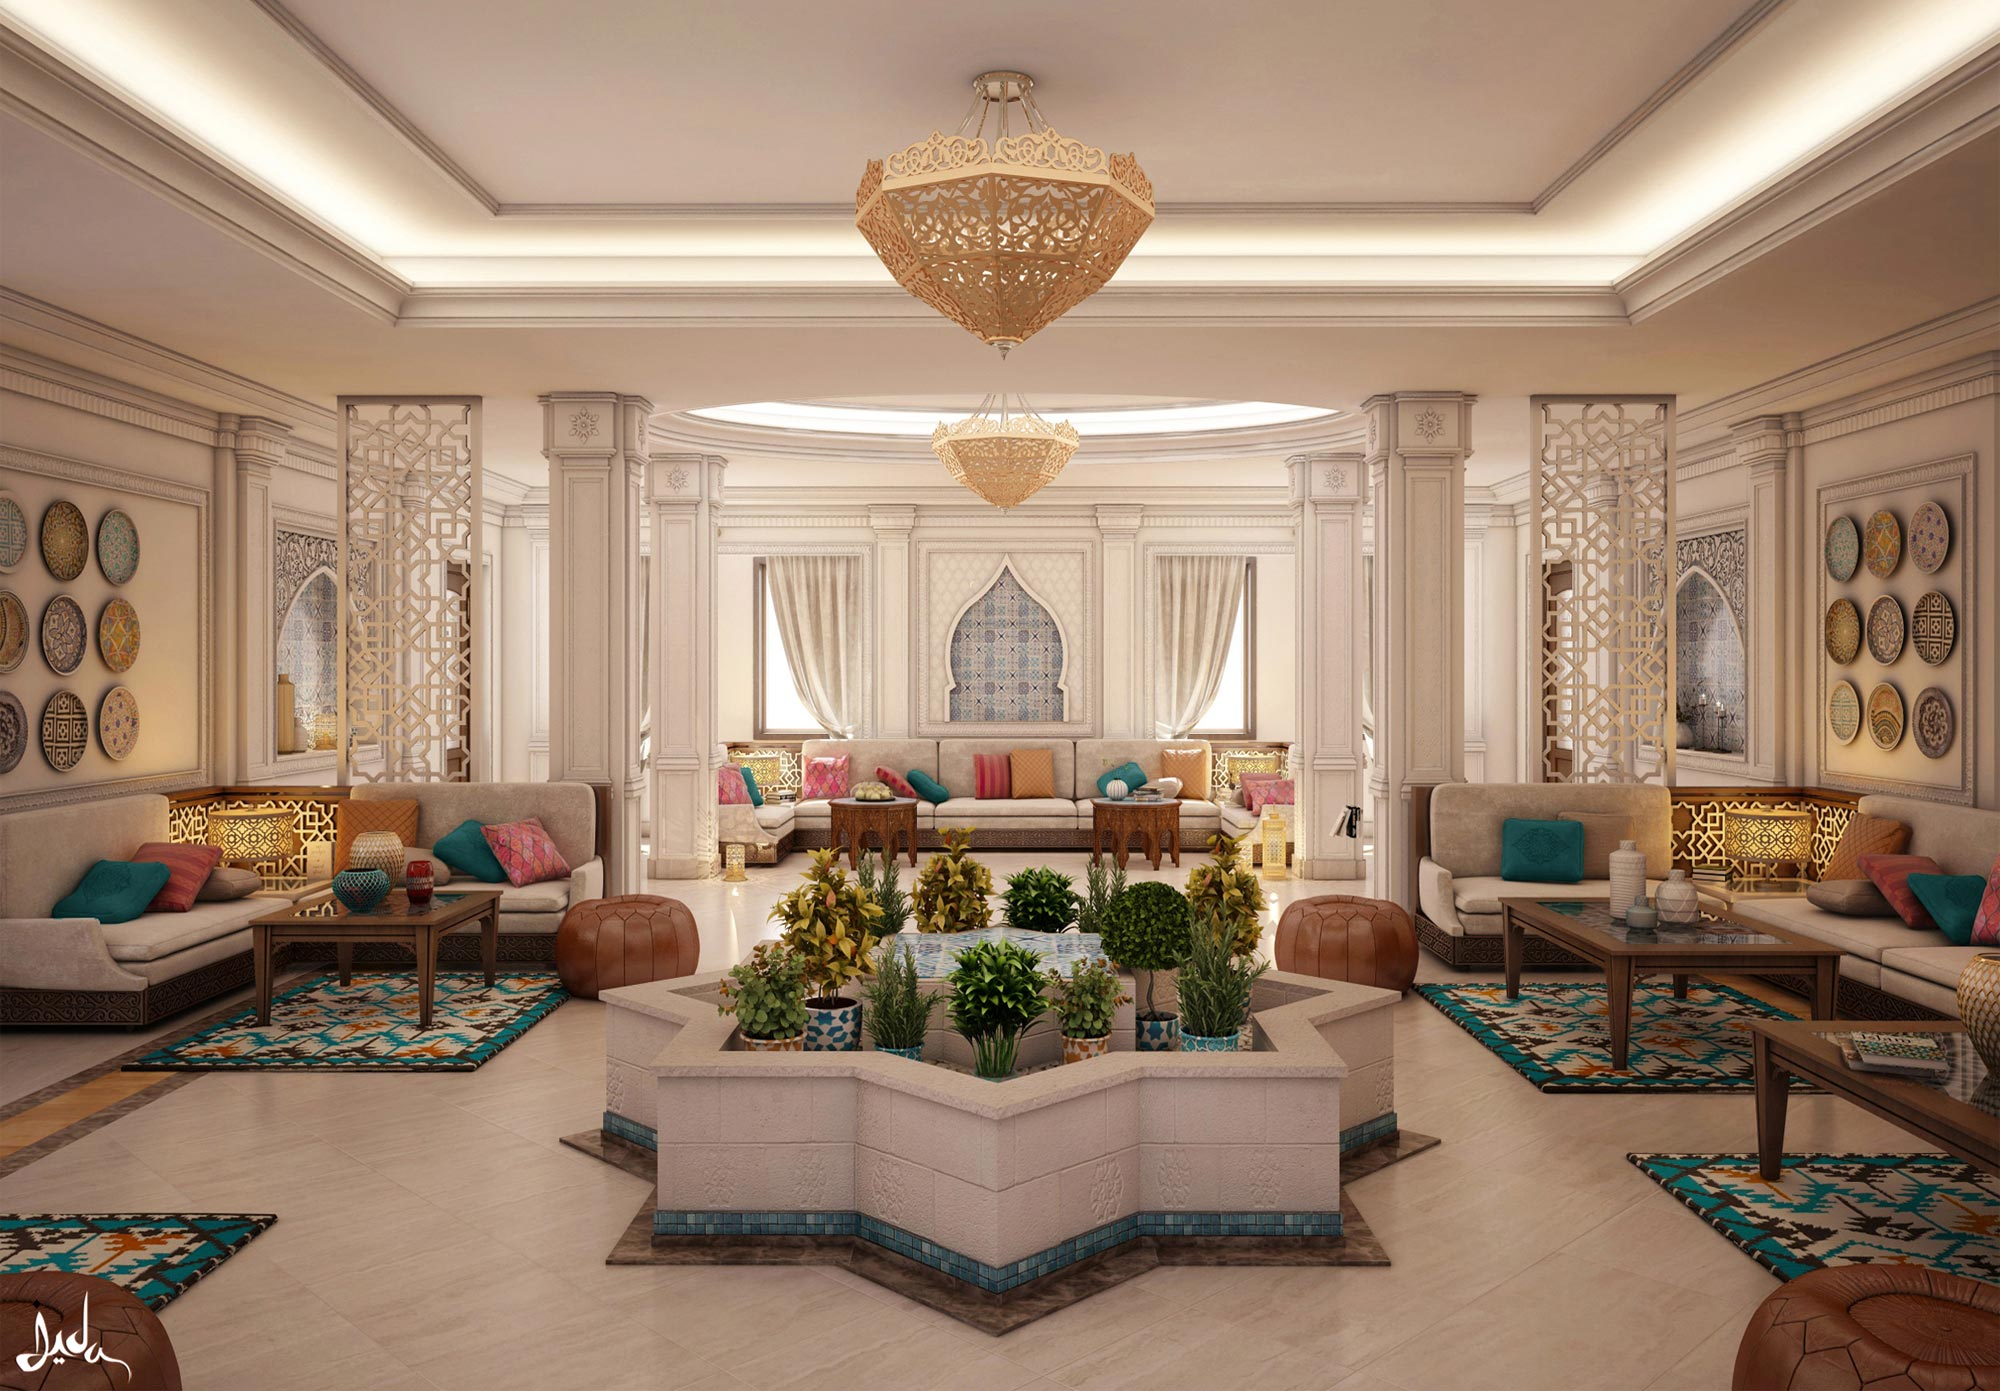 Jeddah Interior Design Architects